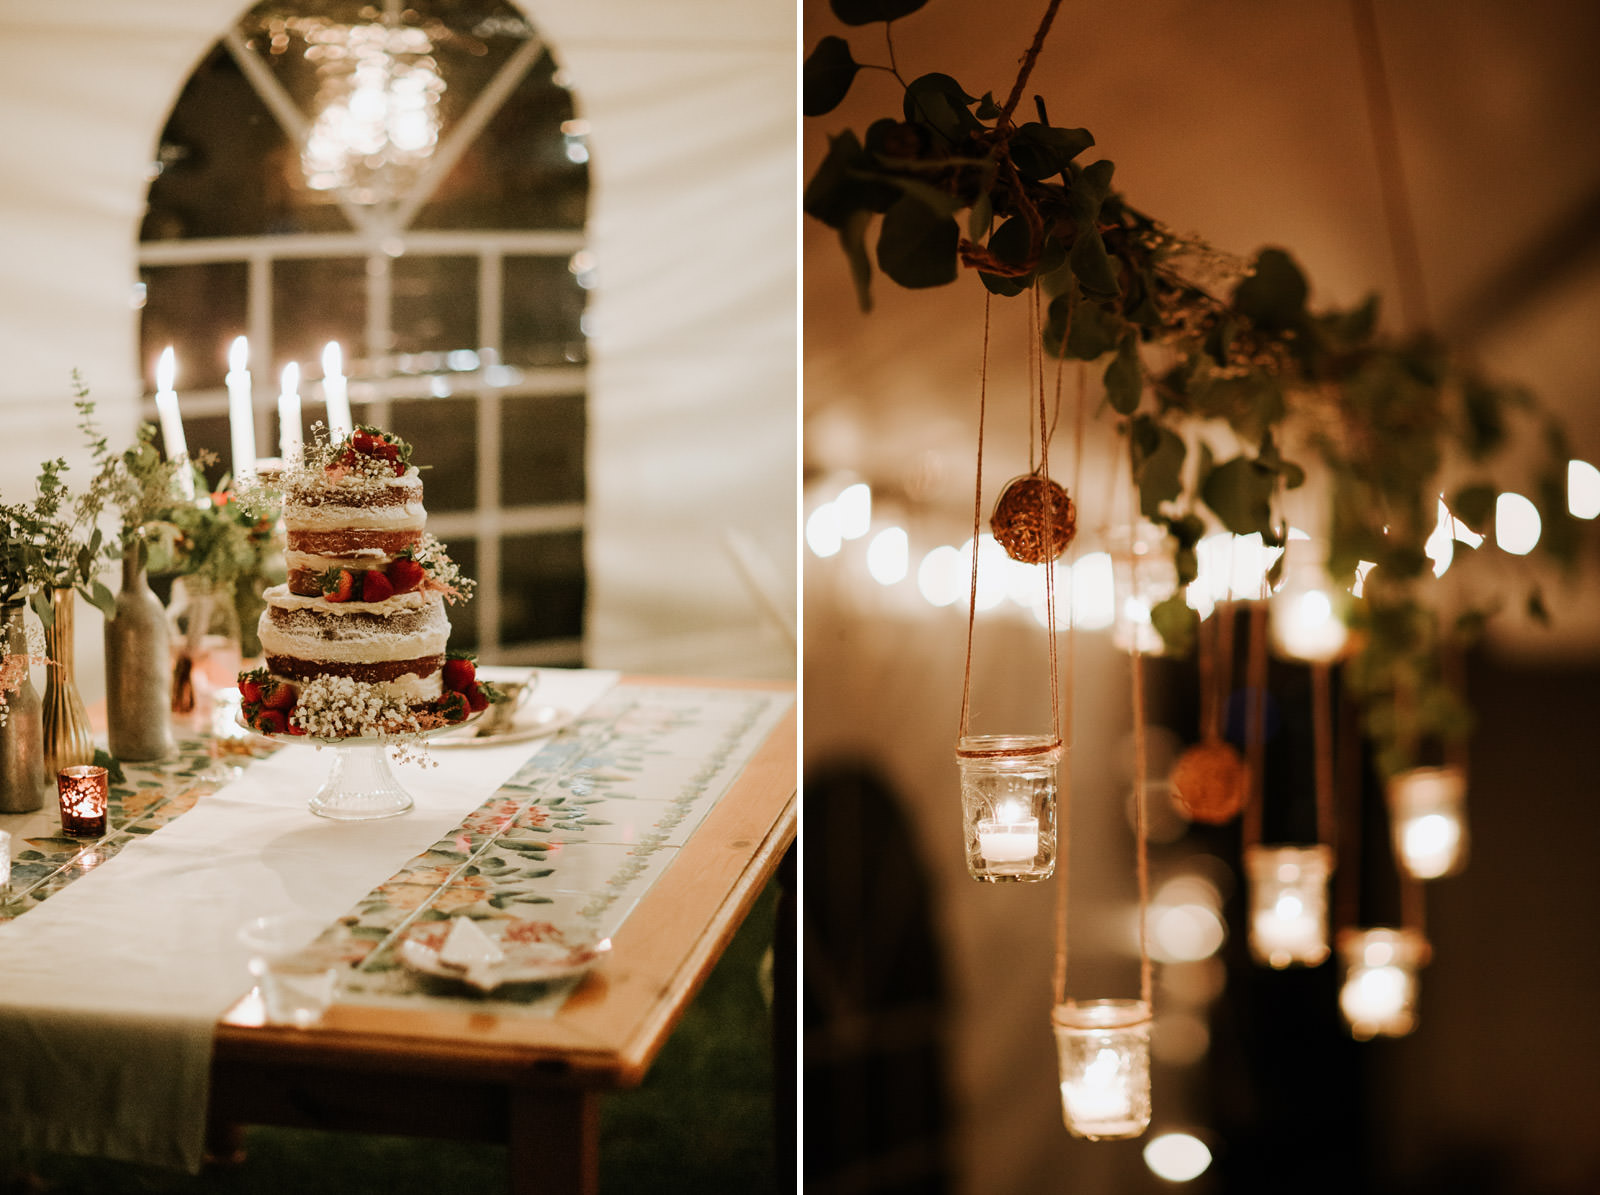 Backyard Wedding Decorations Ideas Pictures